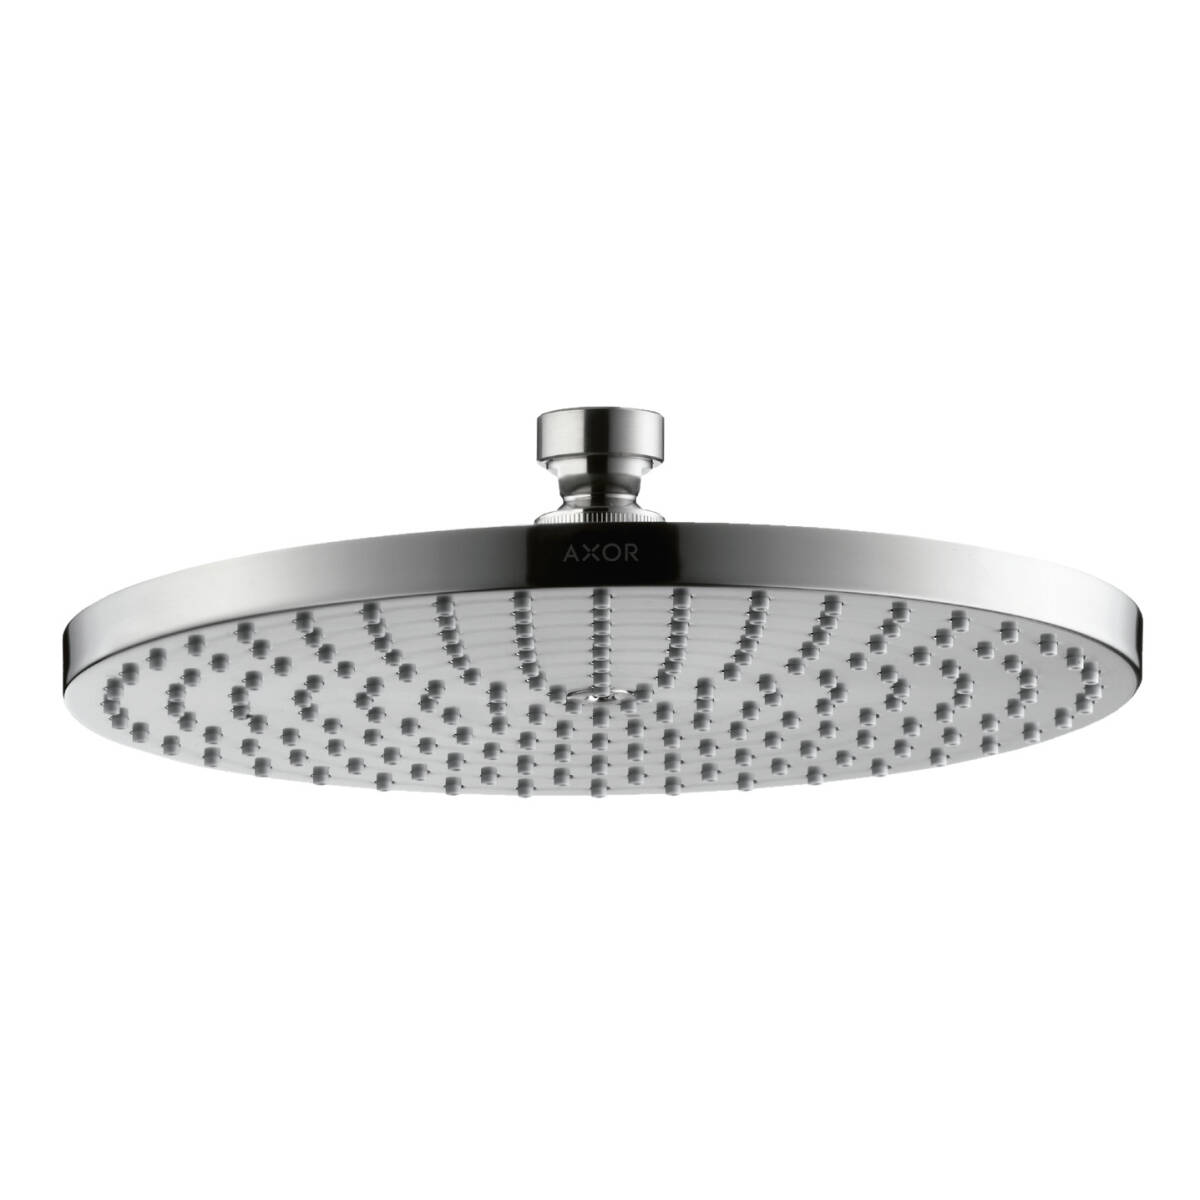 Plate overhead shower 240 1jet, Chrome, 28494000